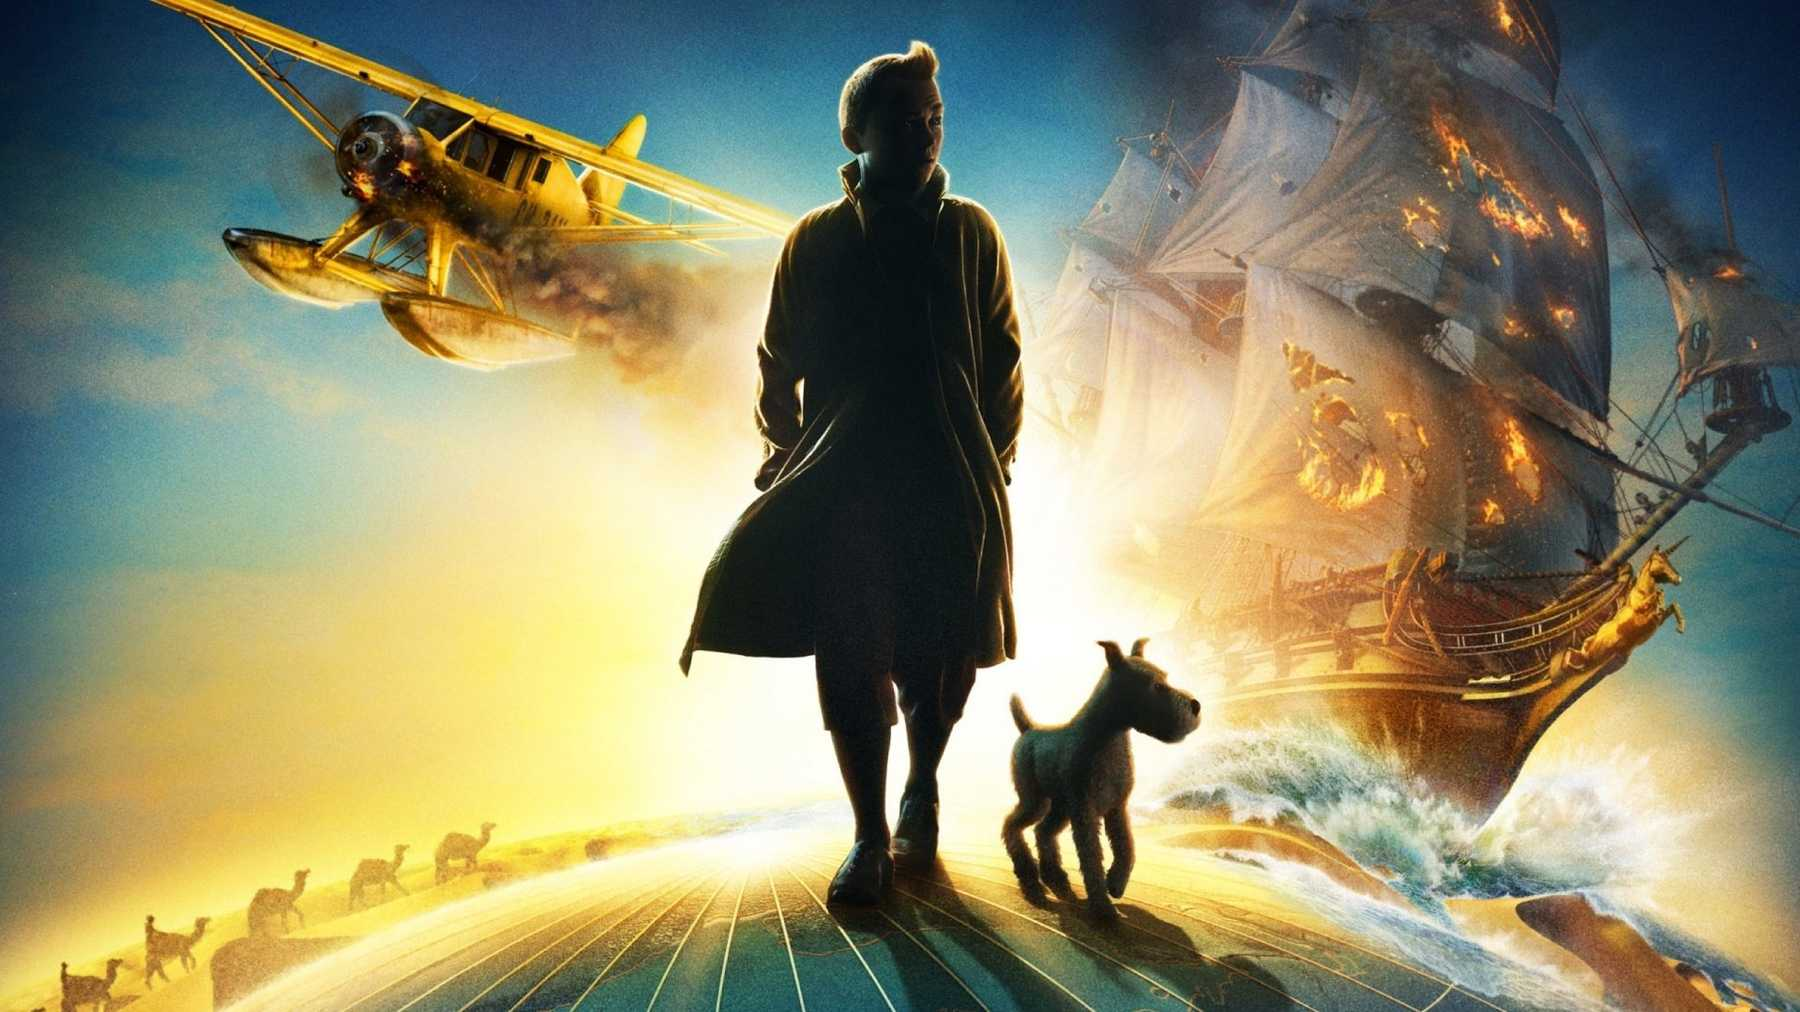 Adventures of Tintin: The Secret of the Unicorn, The Review